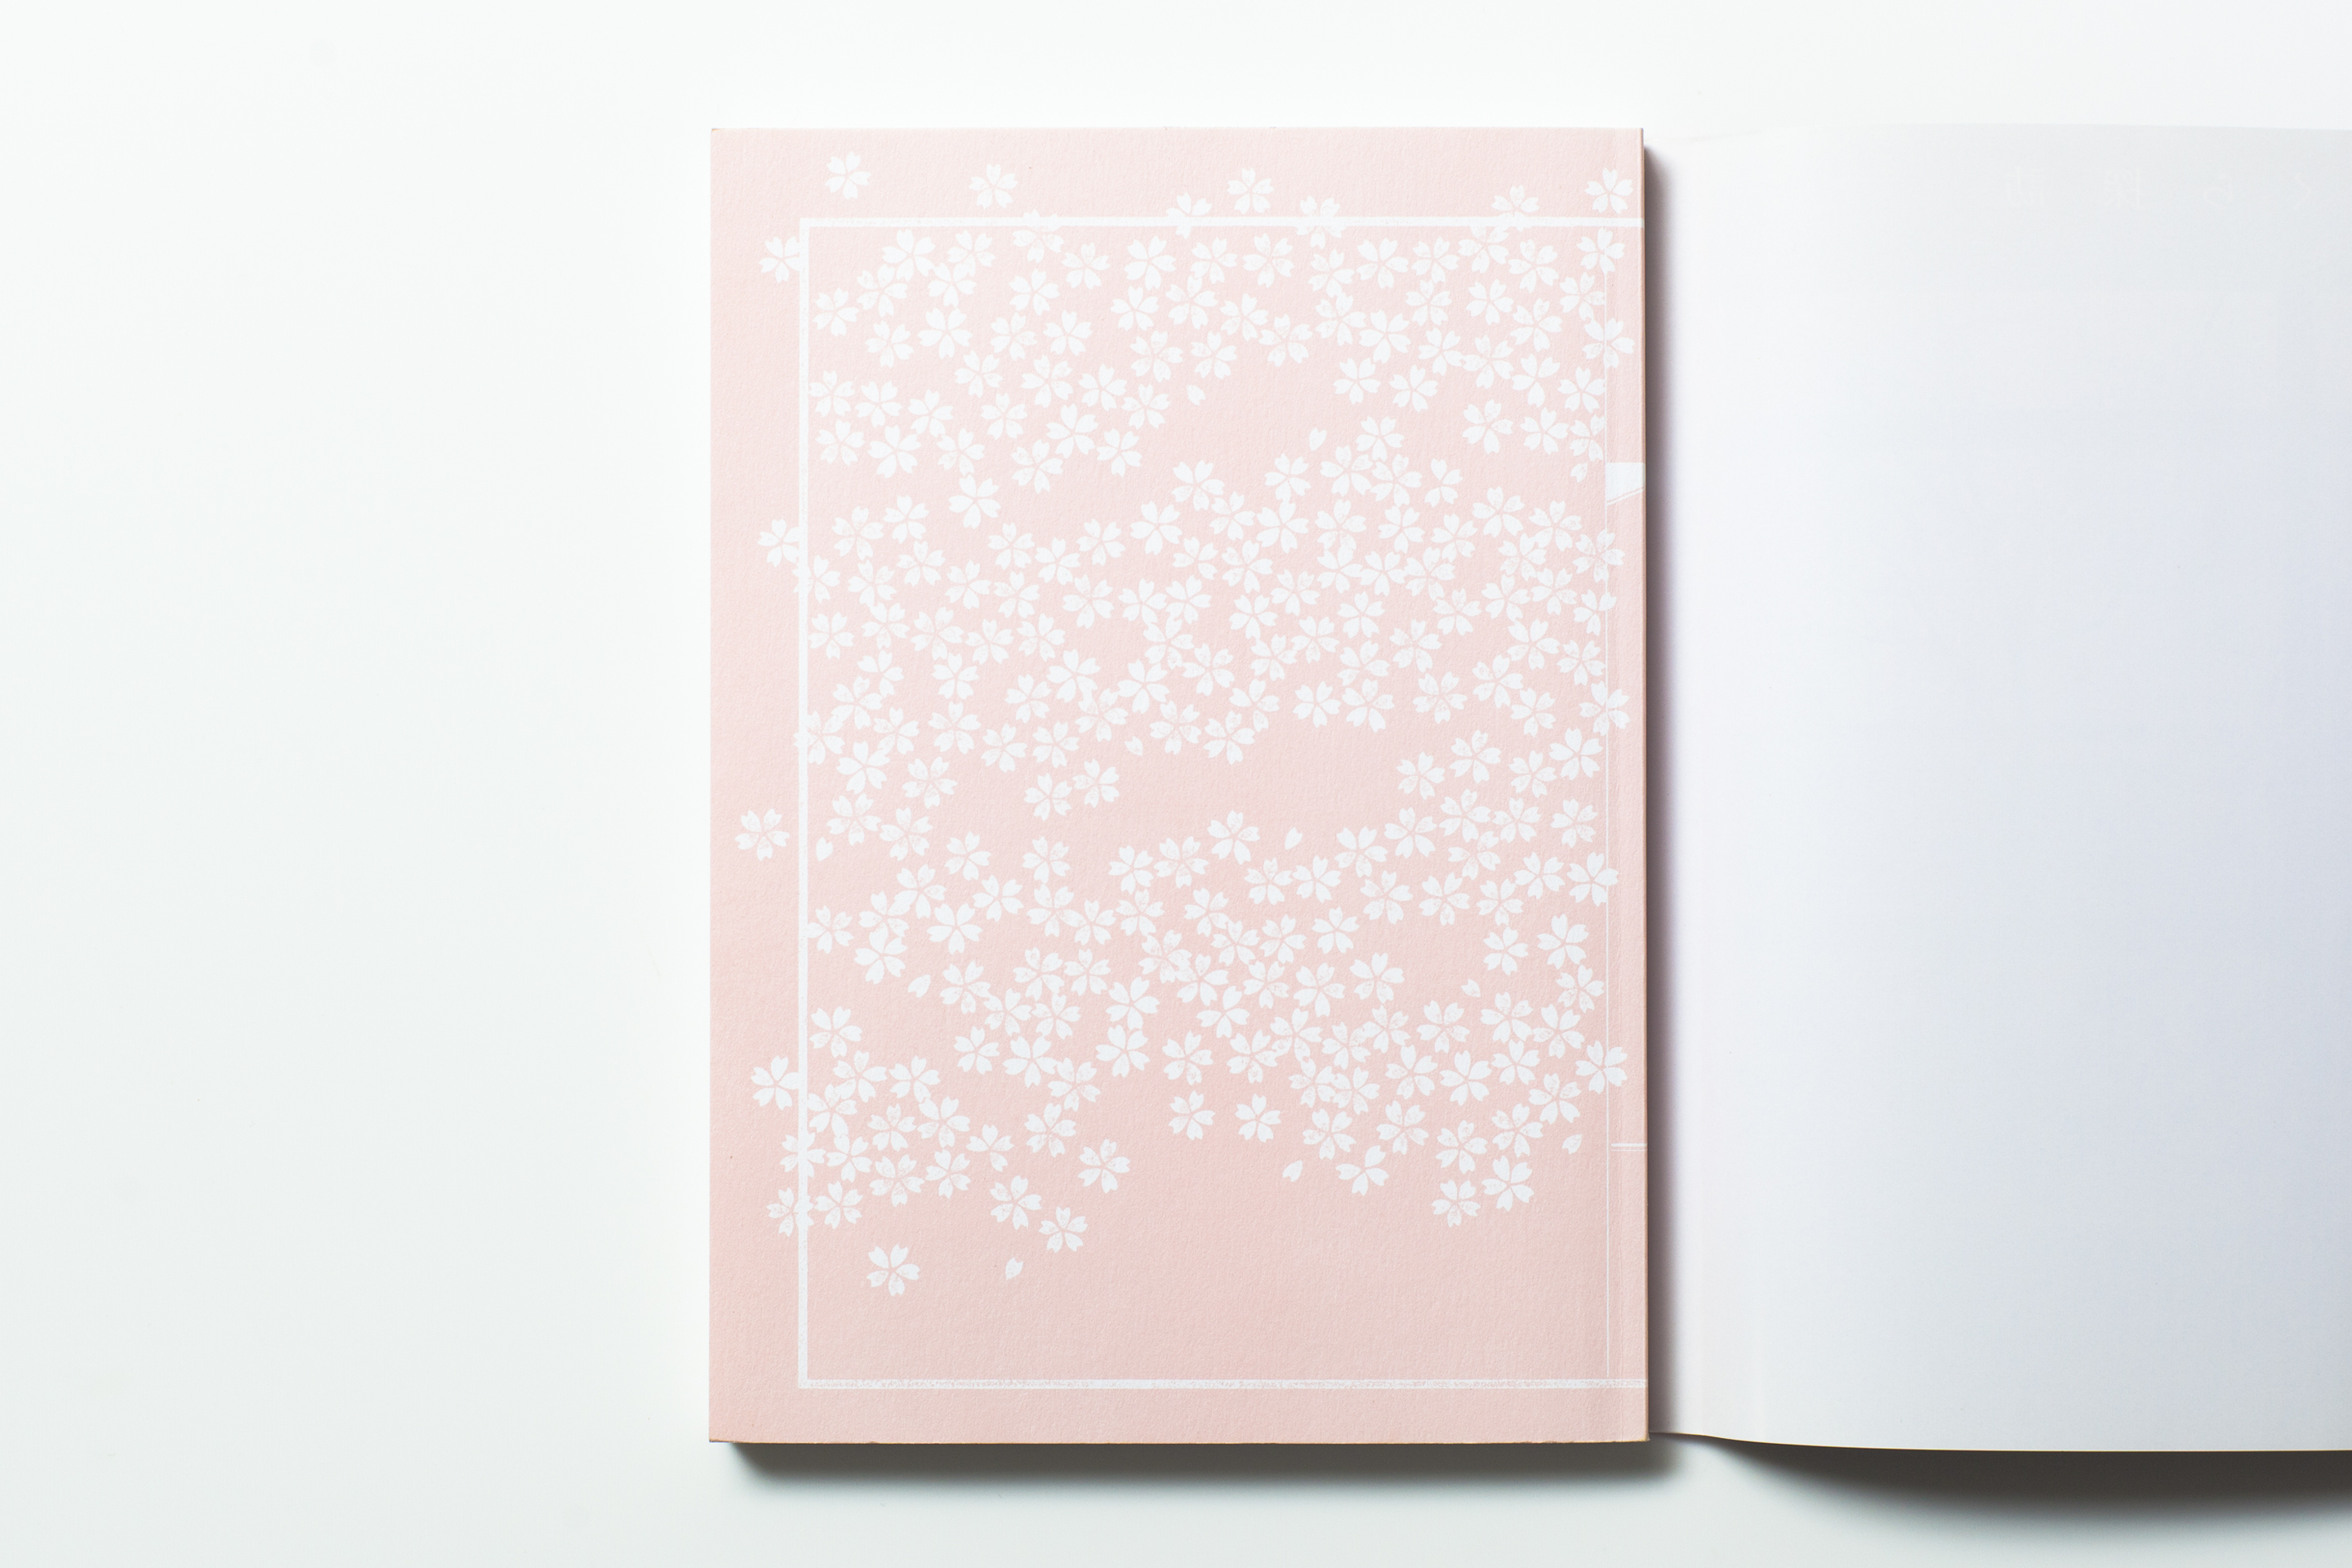 WORKS_BOOK176